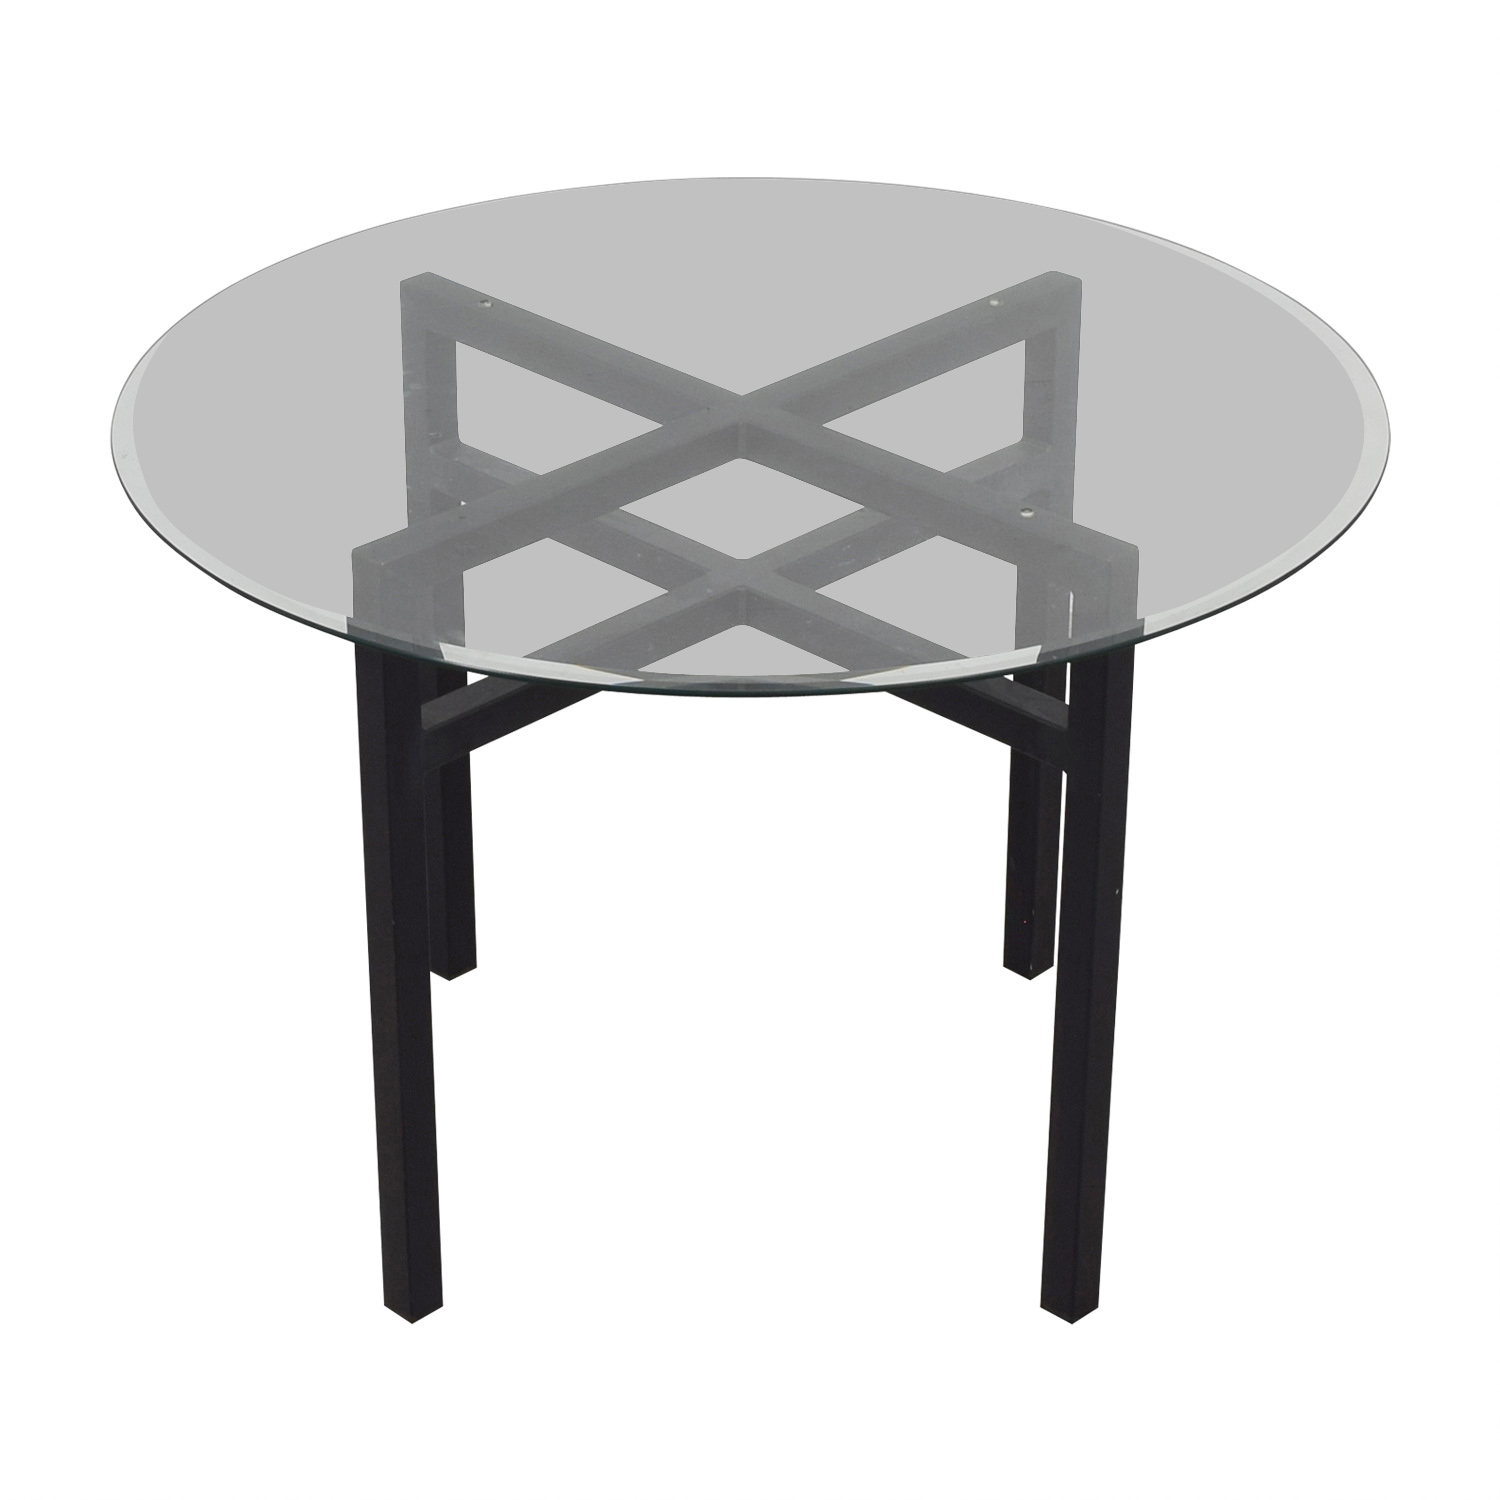 Room & Board Benson Round Glass Top Dining Table / Tables